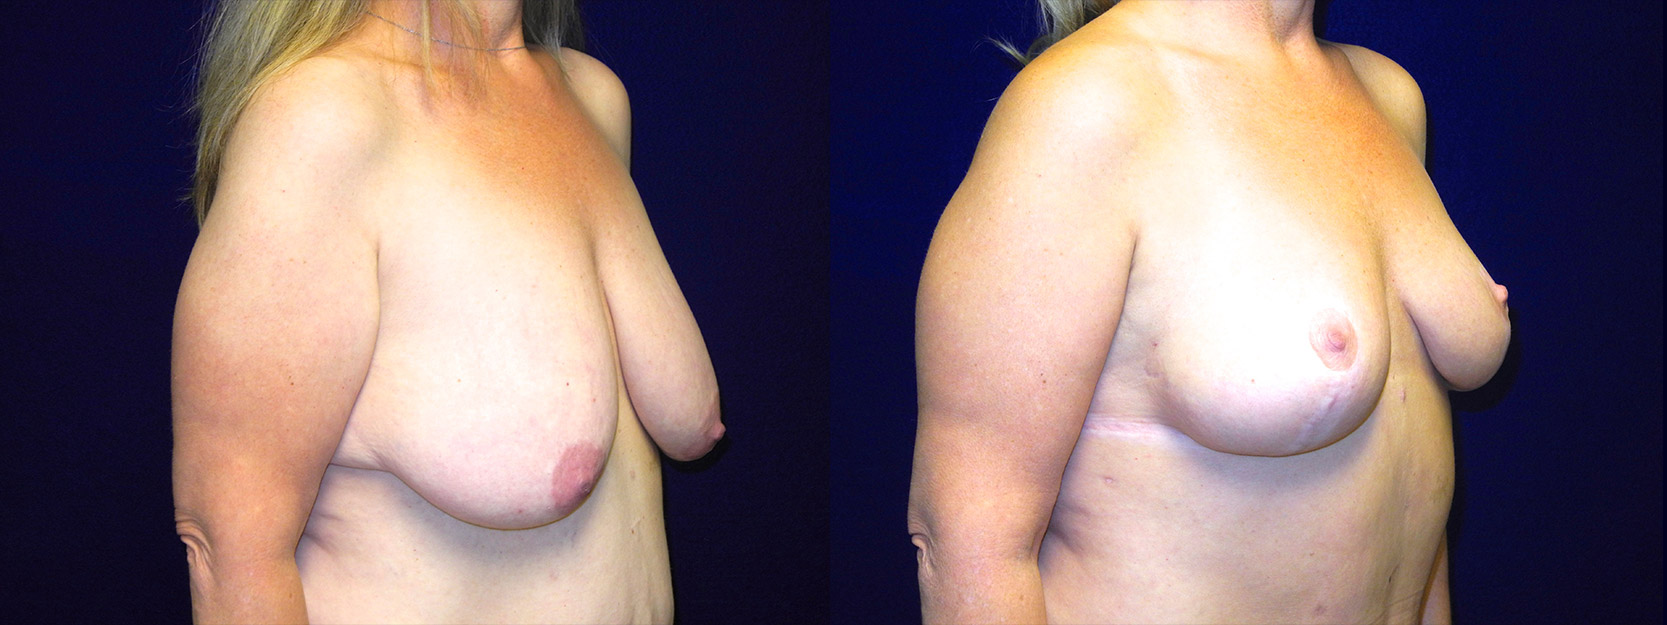 Right 3/4 View - Breast Lift After Massive Weight Loss